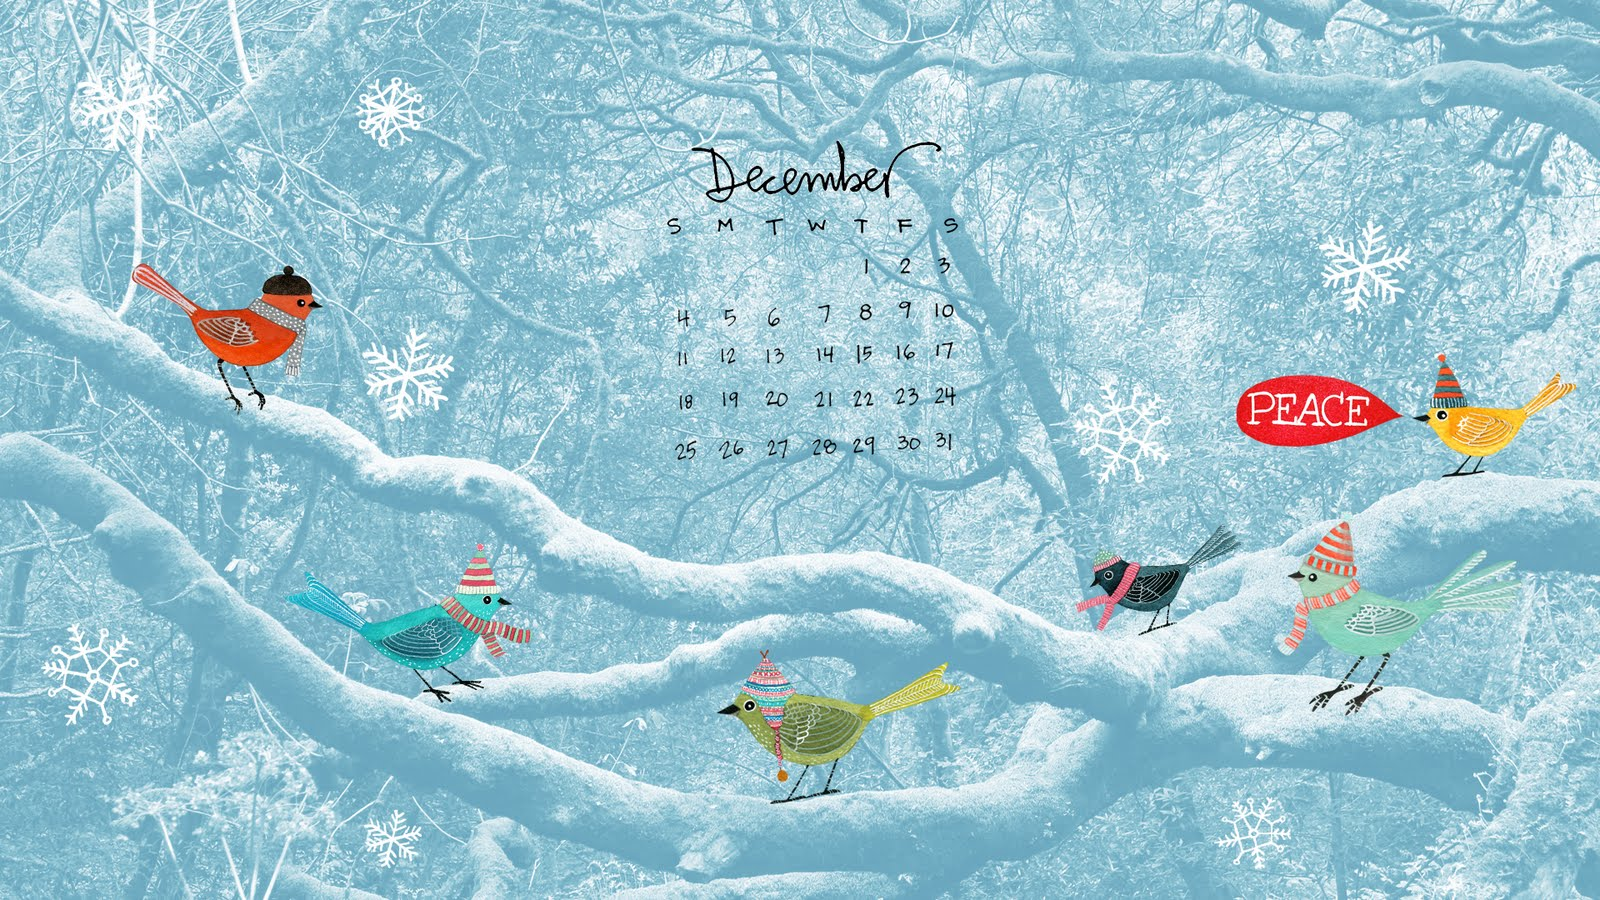 December Calendar Art : Geninne s art december desktop calendar